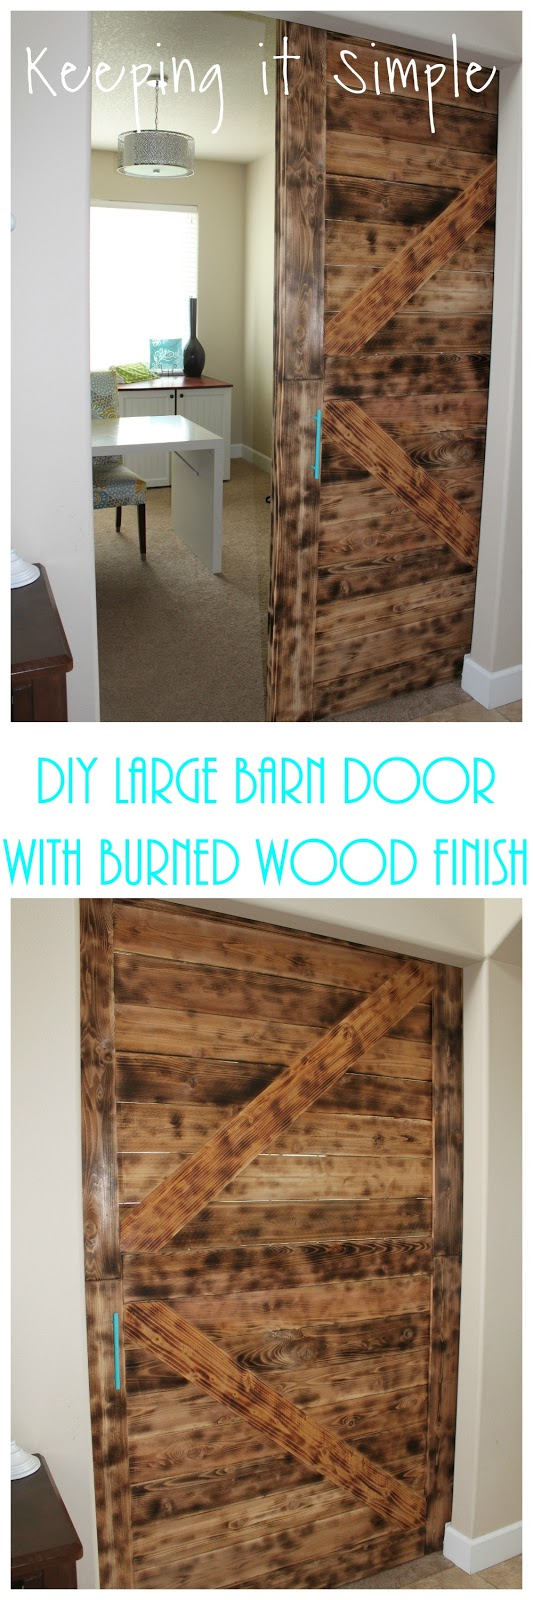 how to do a burnt wood finish